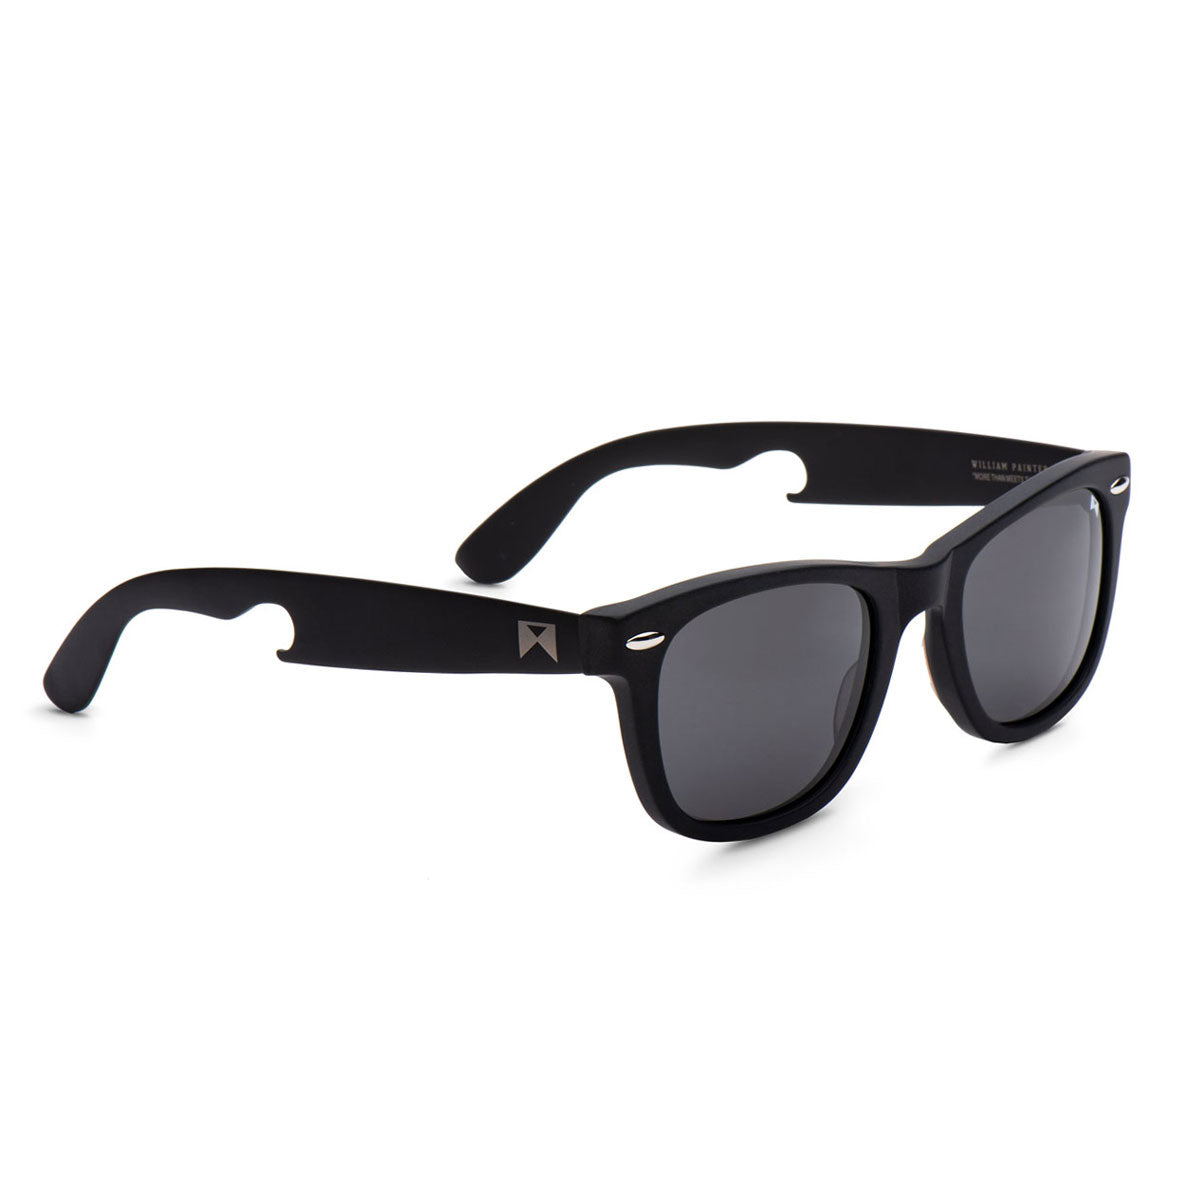 5191a17dce Titanium Sunglasses by William Painter